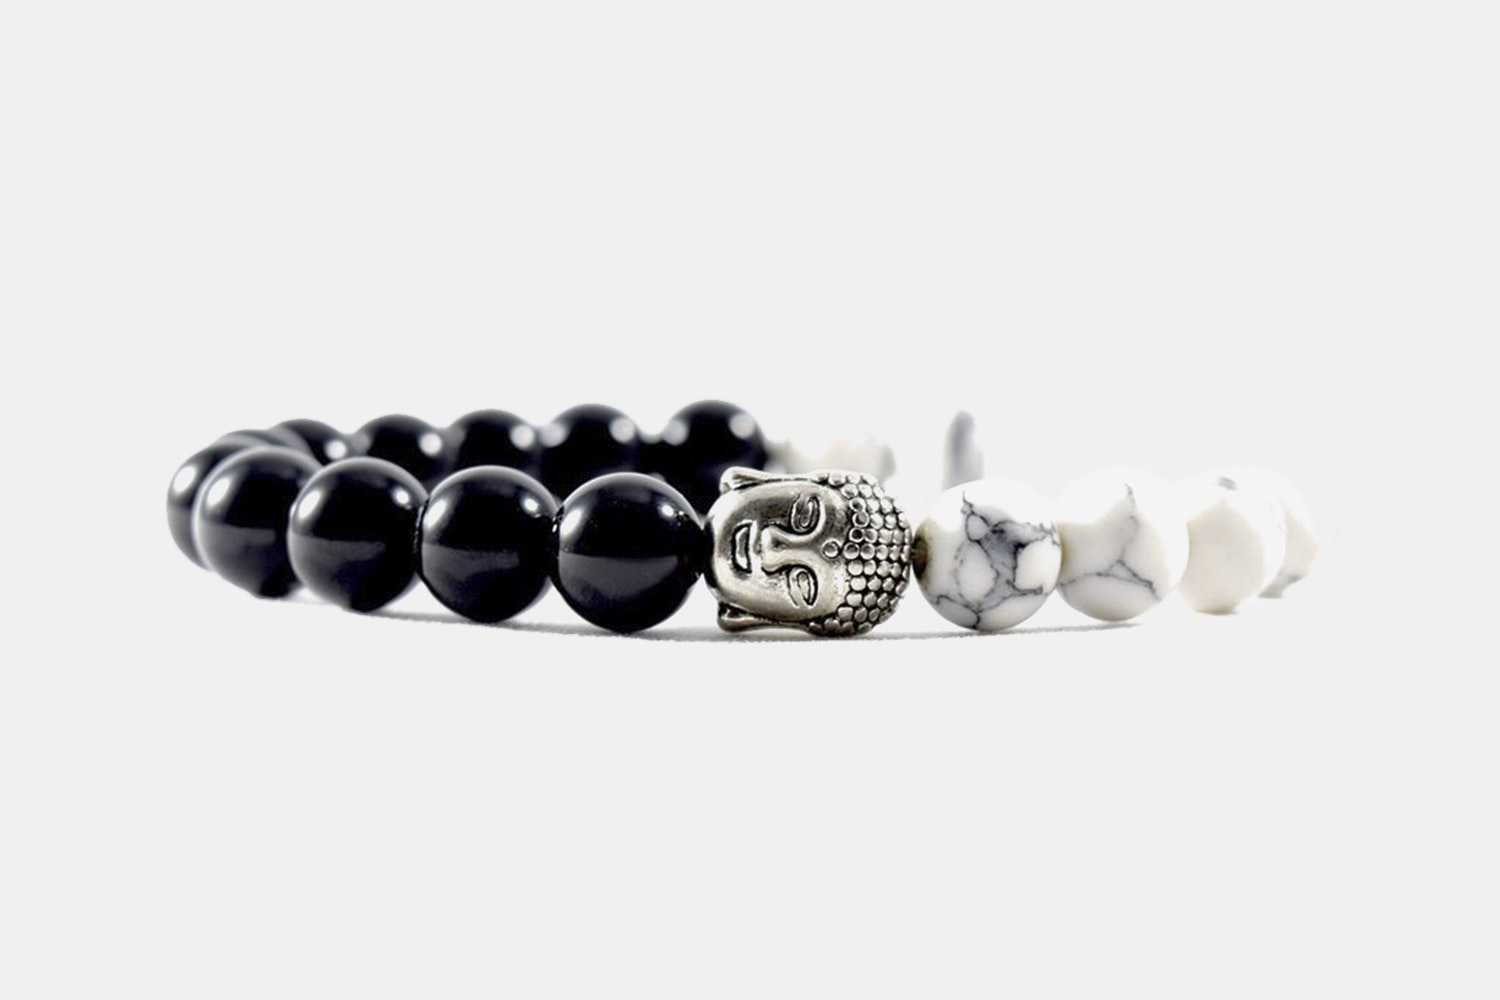 Executive Society Beaded & Steel Bracelets